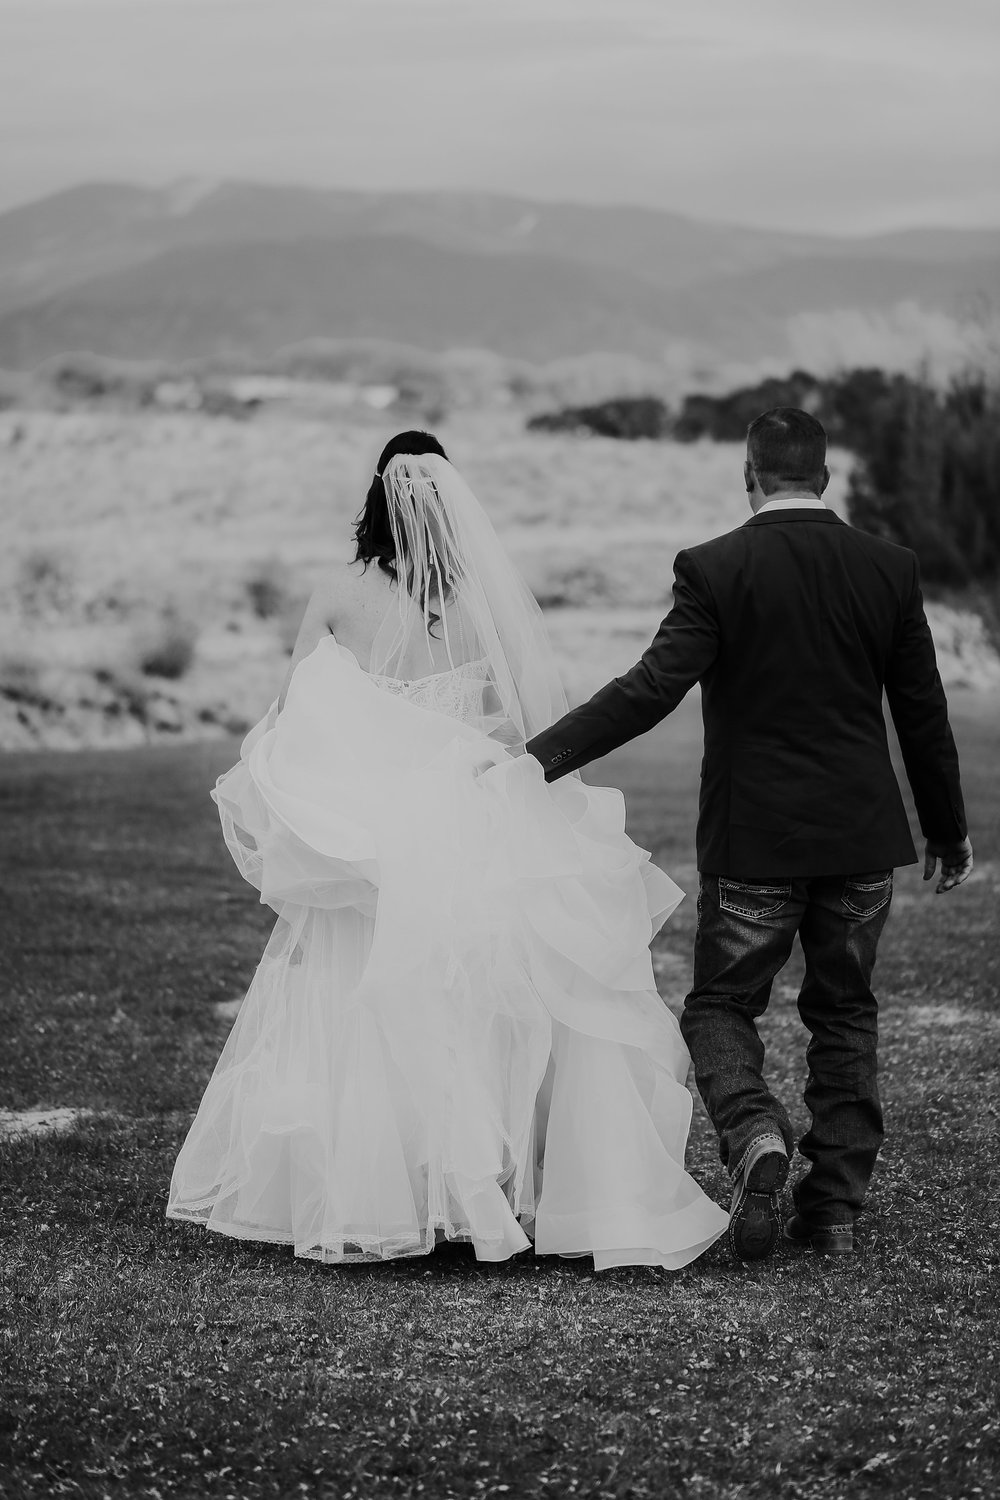 Alicia+lucia+photography+-+albuquerque+wedding+photographer+-+santa+fe+wedding+photography+-+new+mexico+wedding+photographer+-+new+mexico+engagement+-+la+mesita+ranch+wedding+-+la+mesita+ranch+spring+wedding_0059.jpg